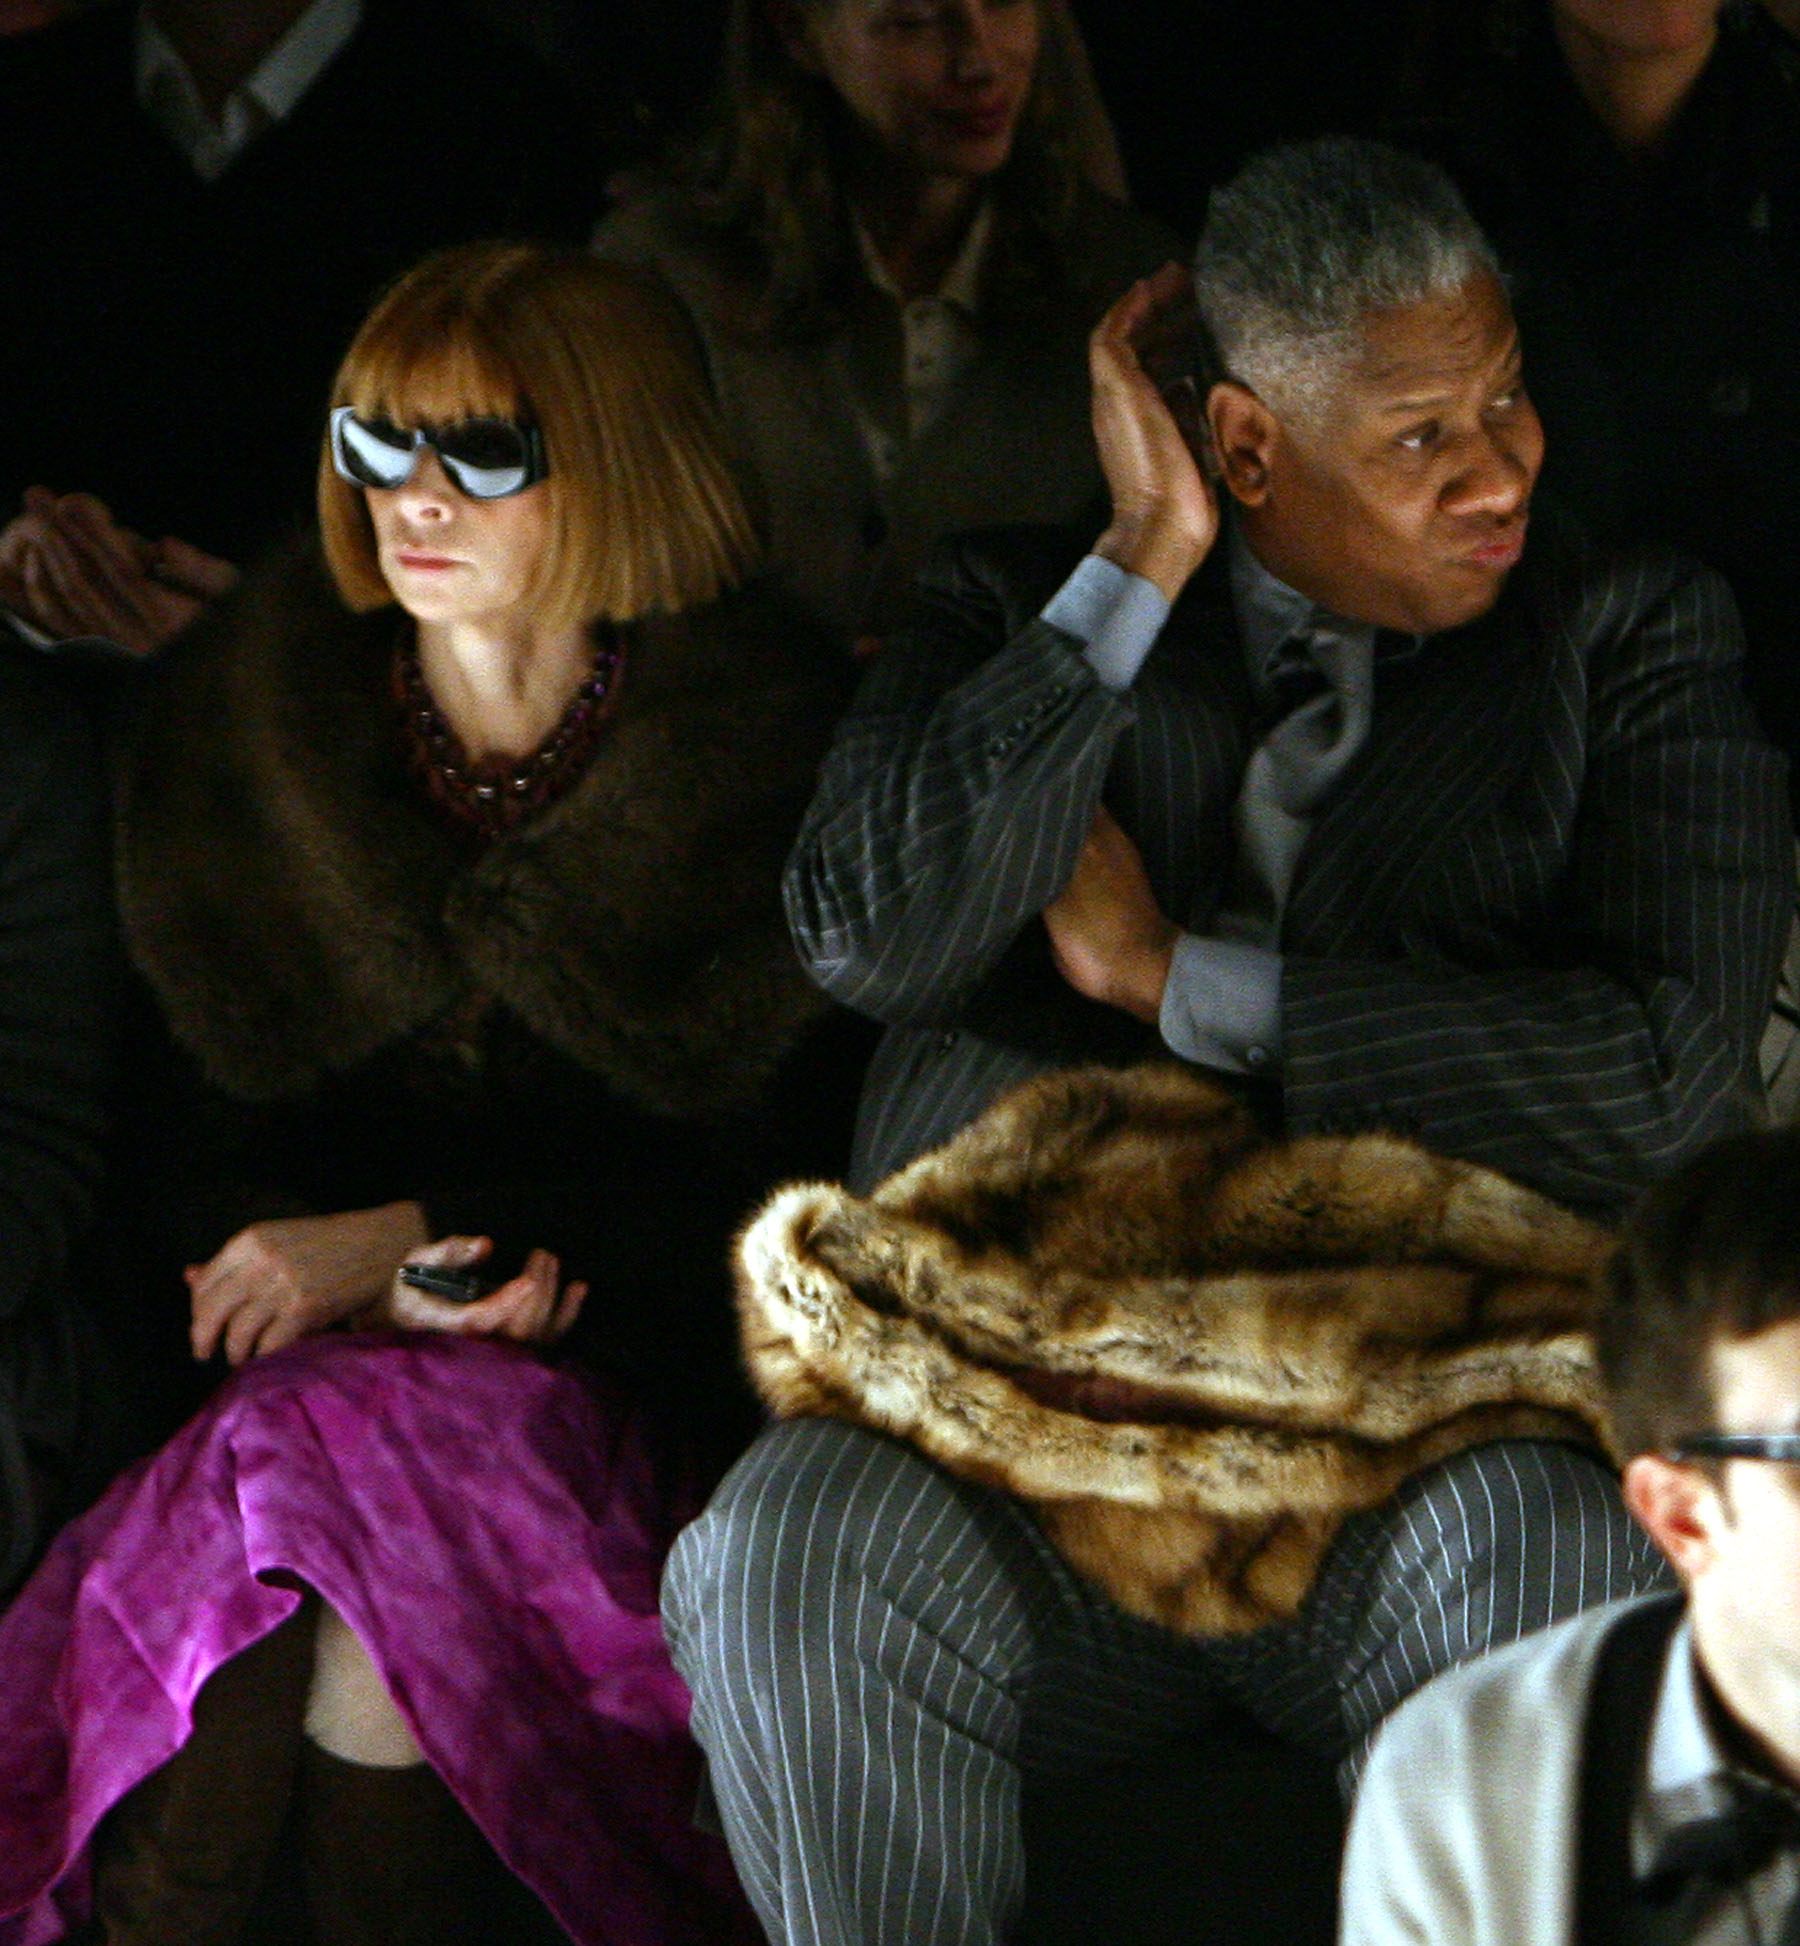 Anna Wintour and André Leon Talley